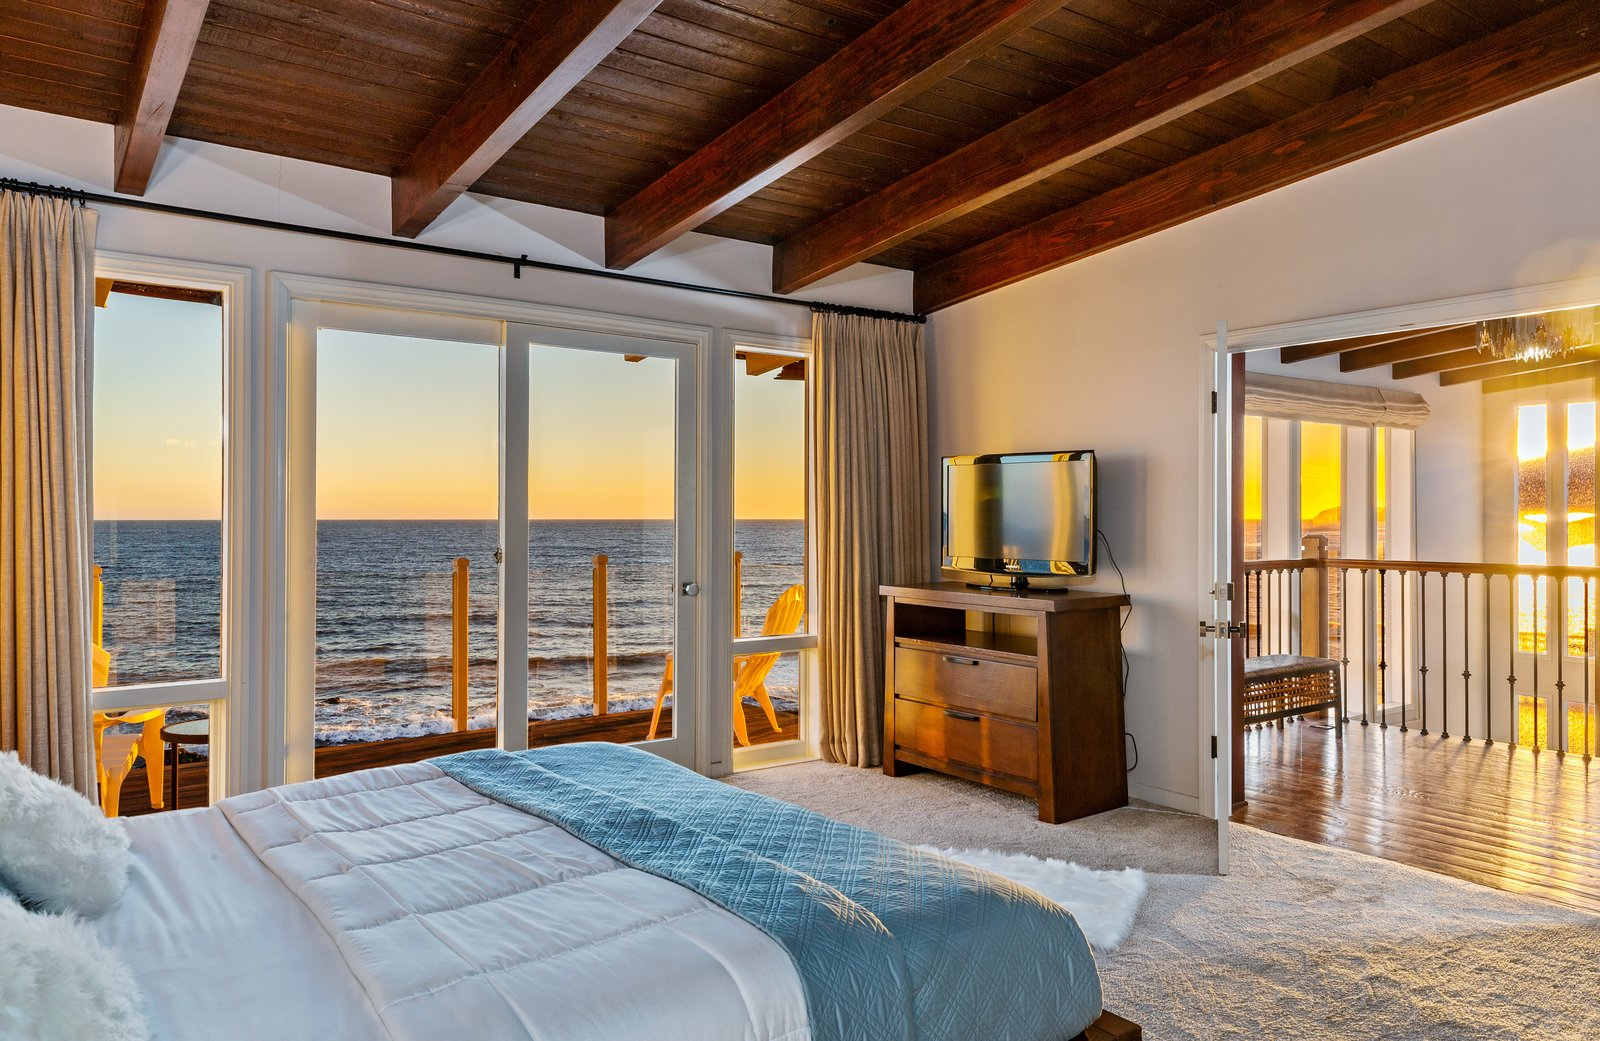 Bedroom, Bed, Carpet Floor, and Dresser The master suite includes two private decks, a fireplace, large closet, updated bath, and wood-beamed ceiling.  Photo 10 of 12 in 'Brady Bunch' Actor Barry Williams Lists His Malibu Home For $6.4M